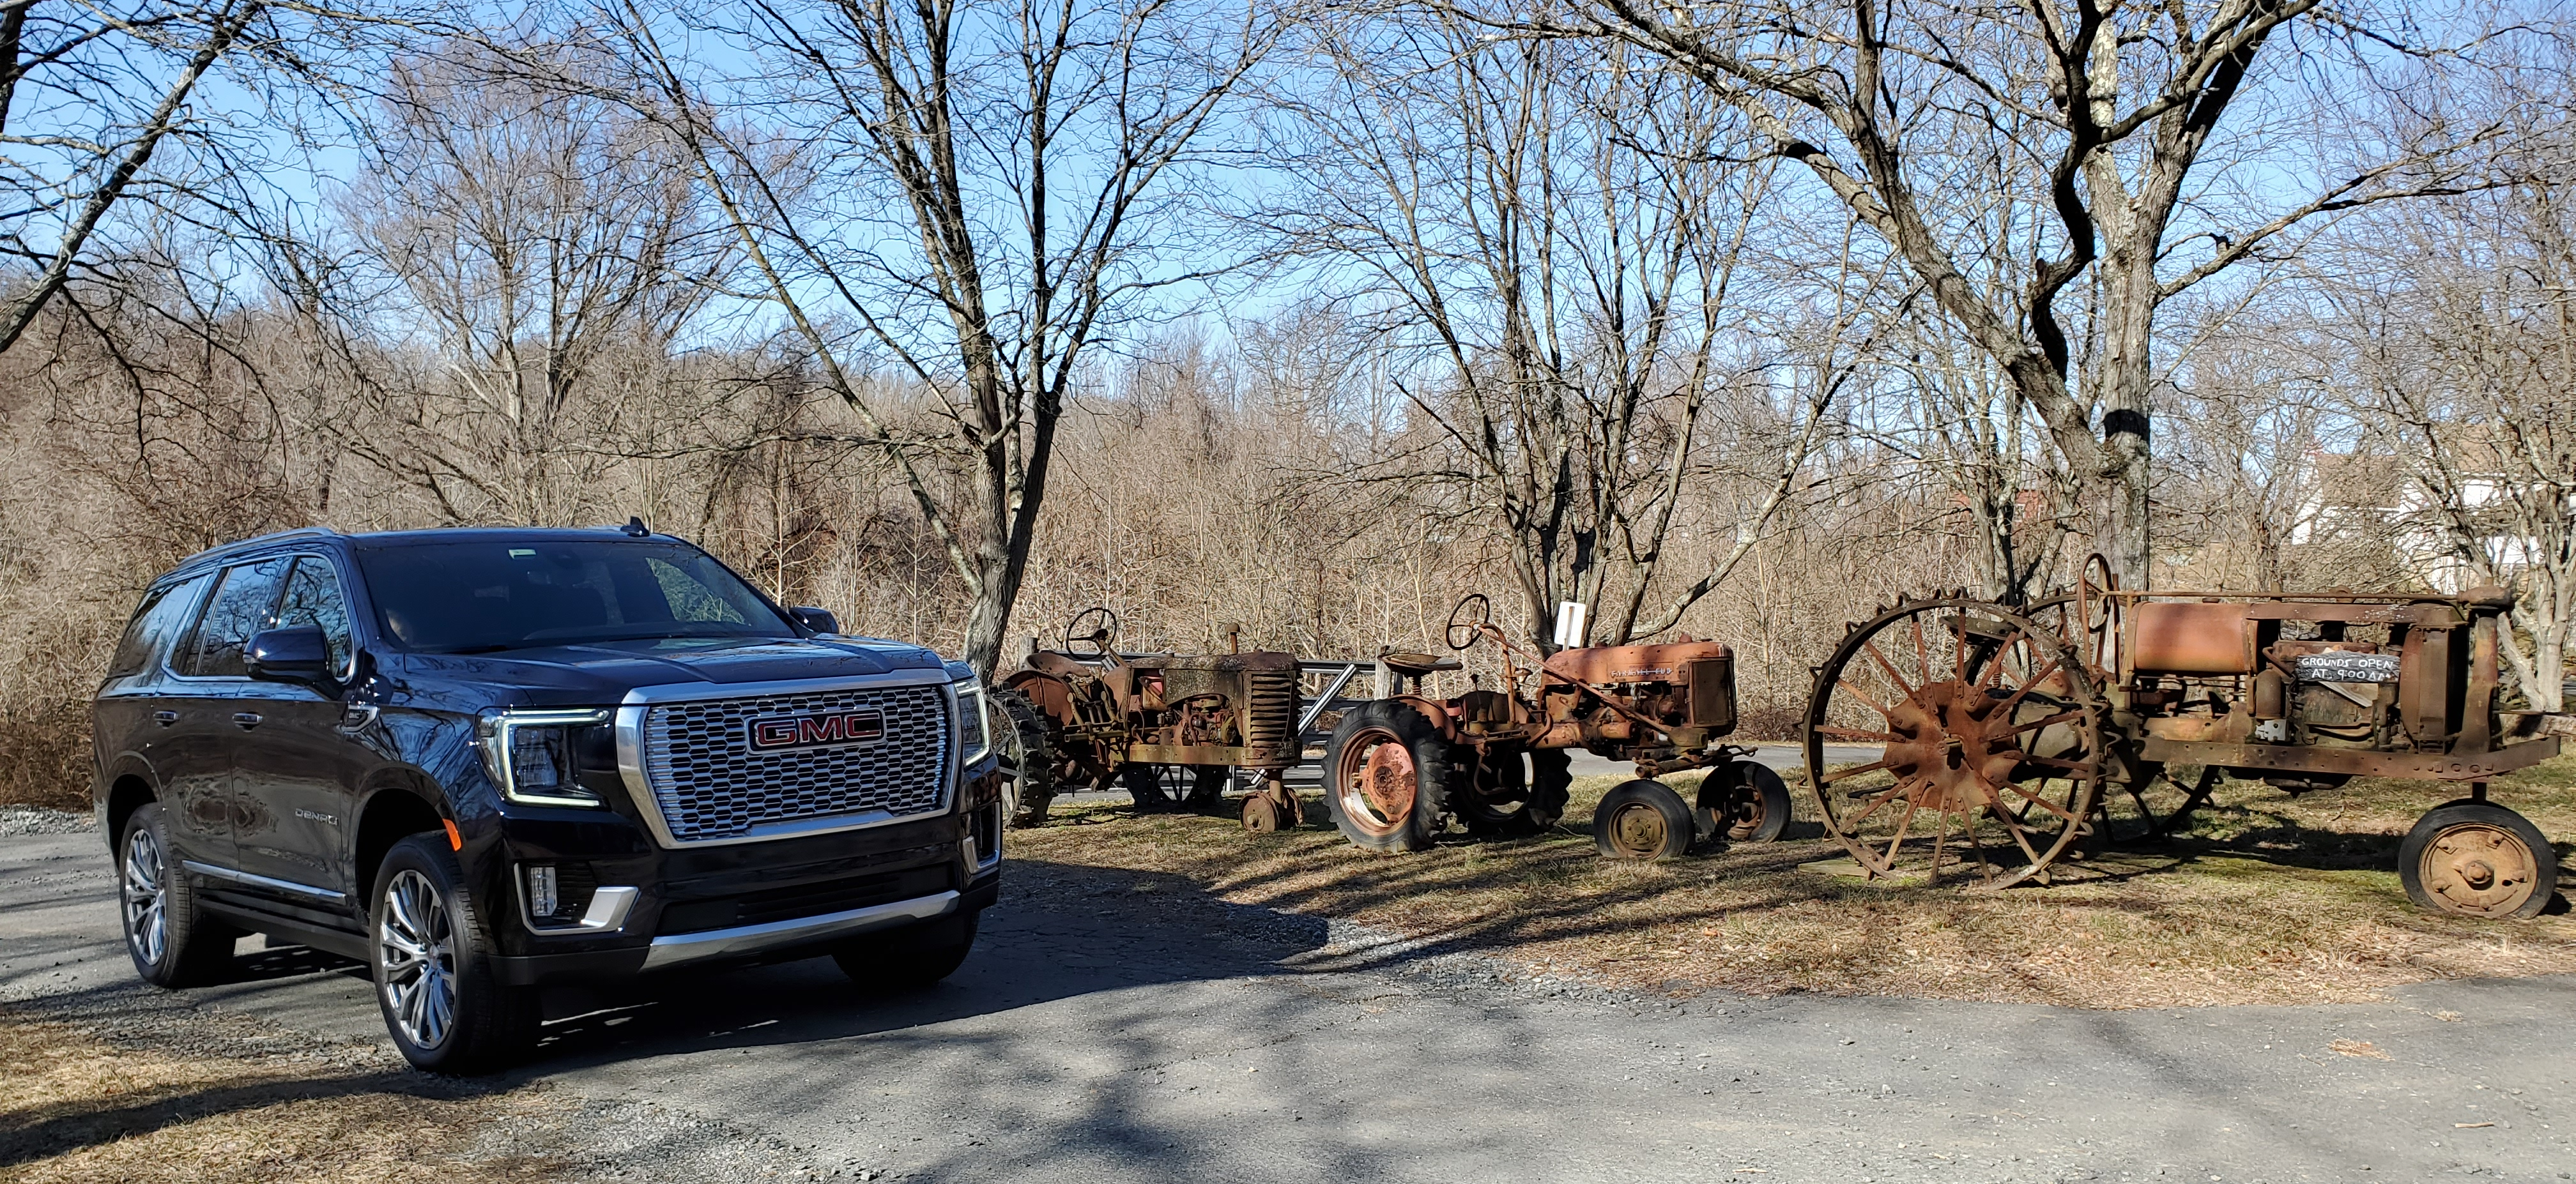 2021 GMC Yukon Denali with old tractors